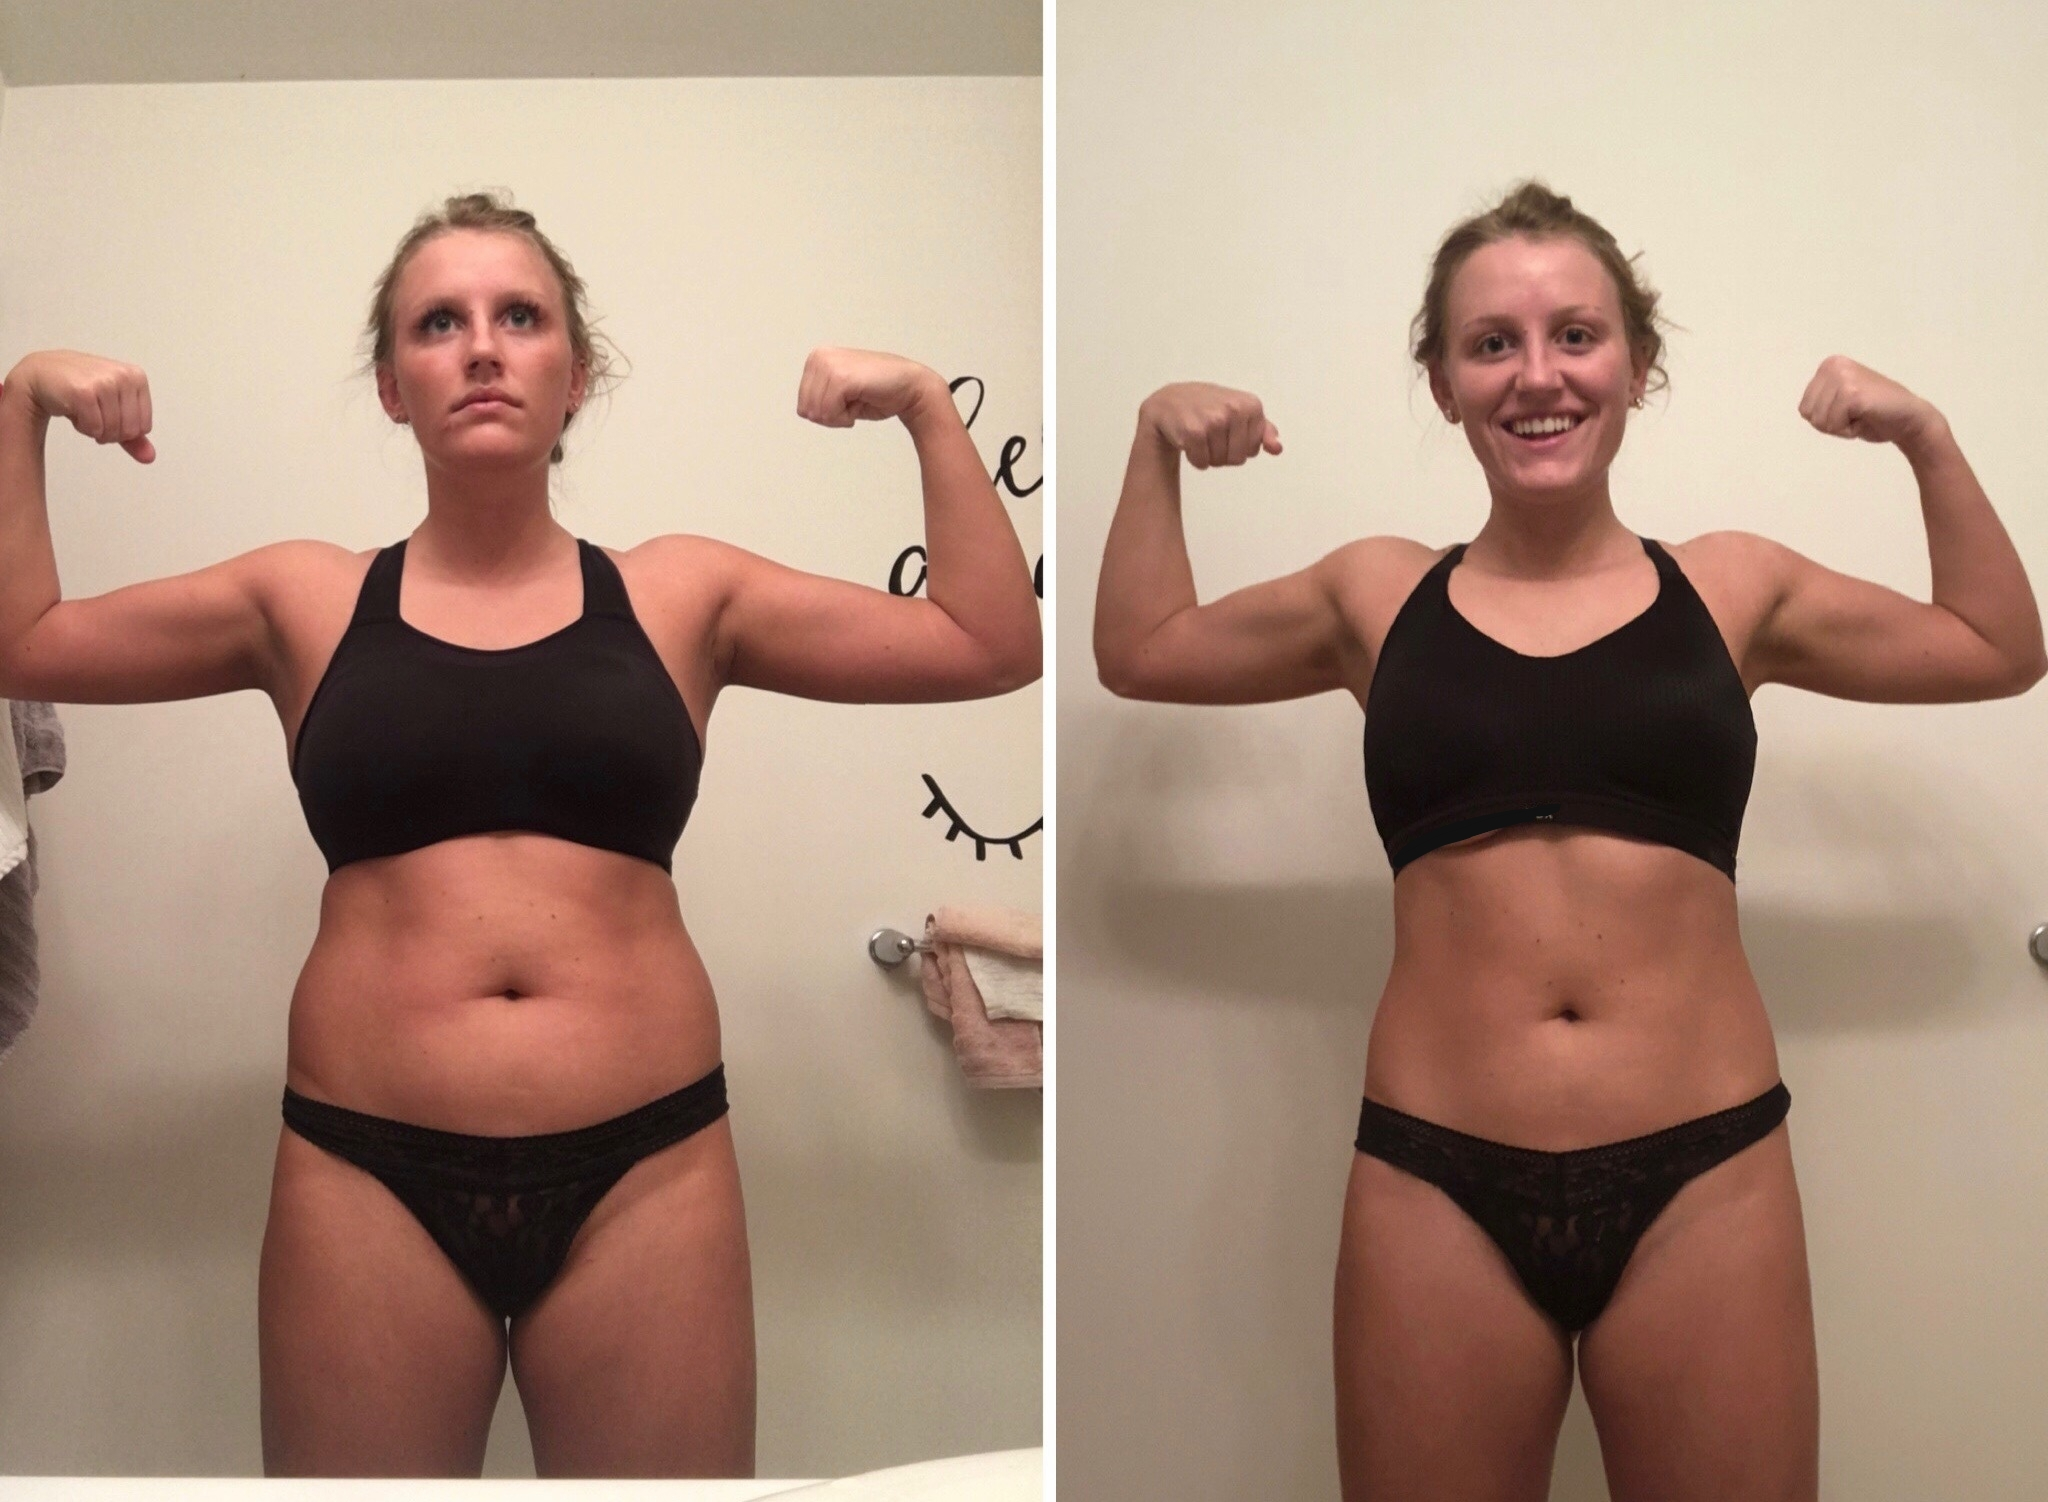 12-Week Training & Nutrition- Lost 10lbs, built muscle, and gained confidence!